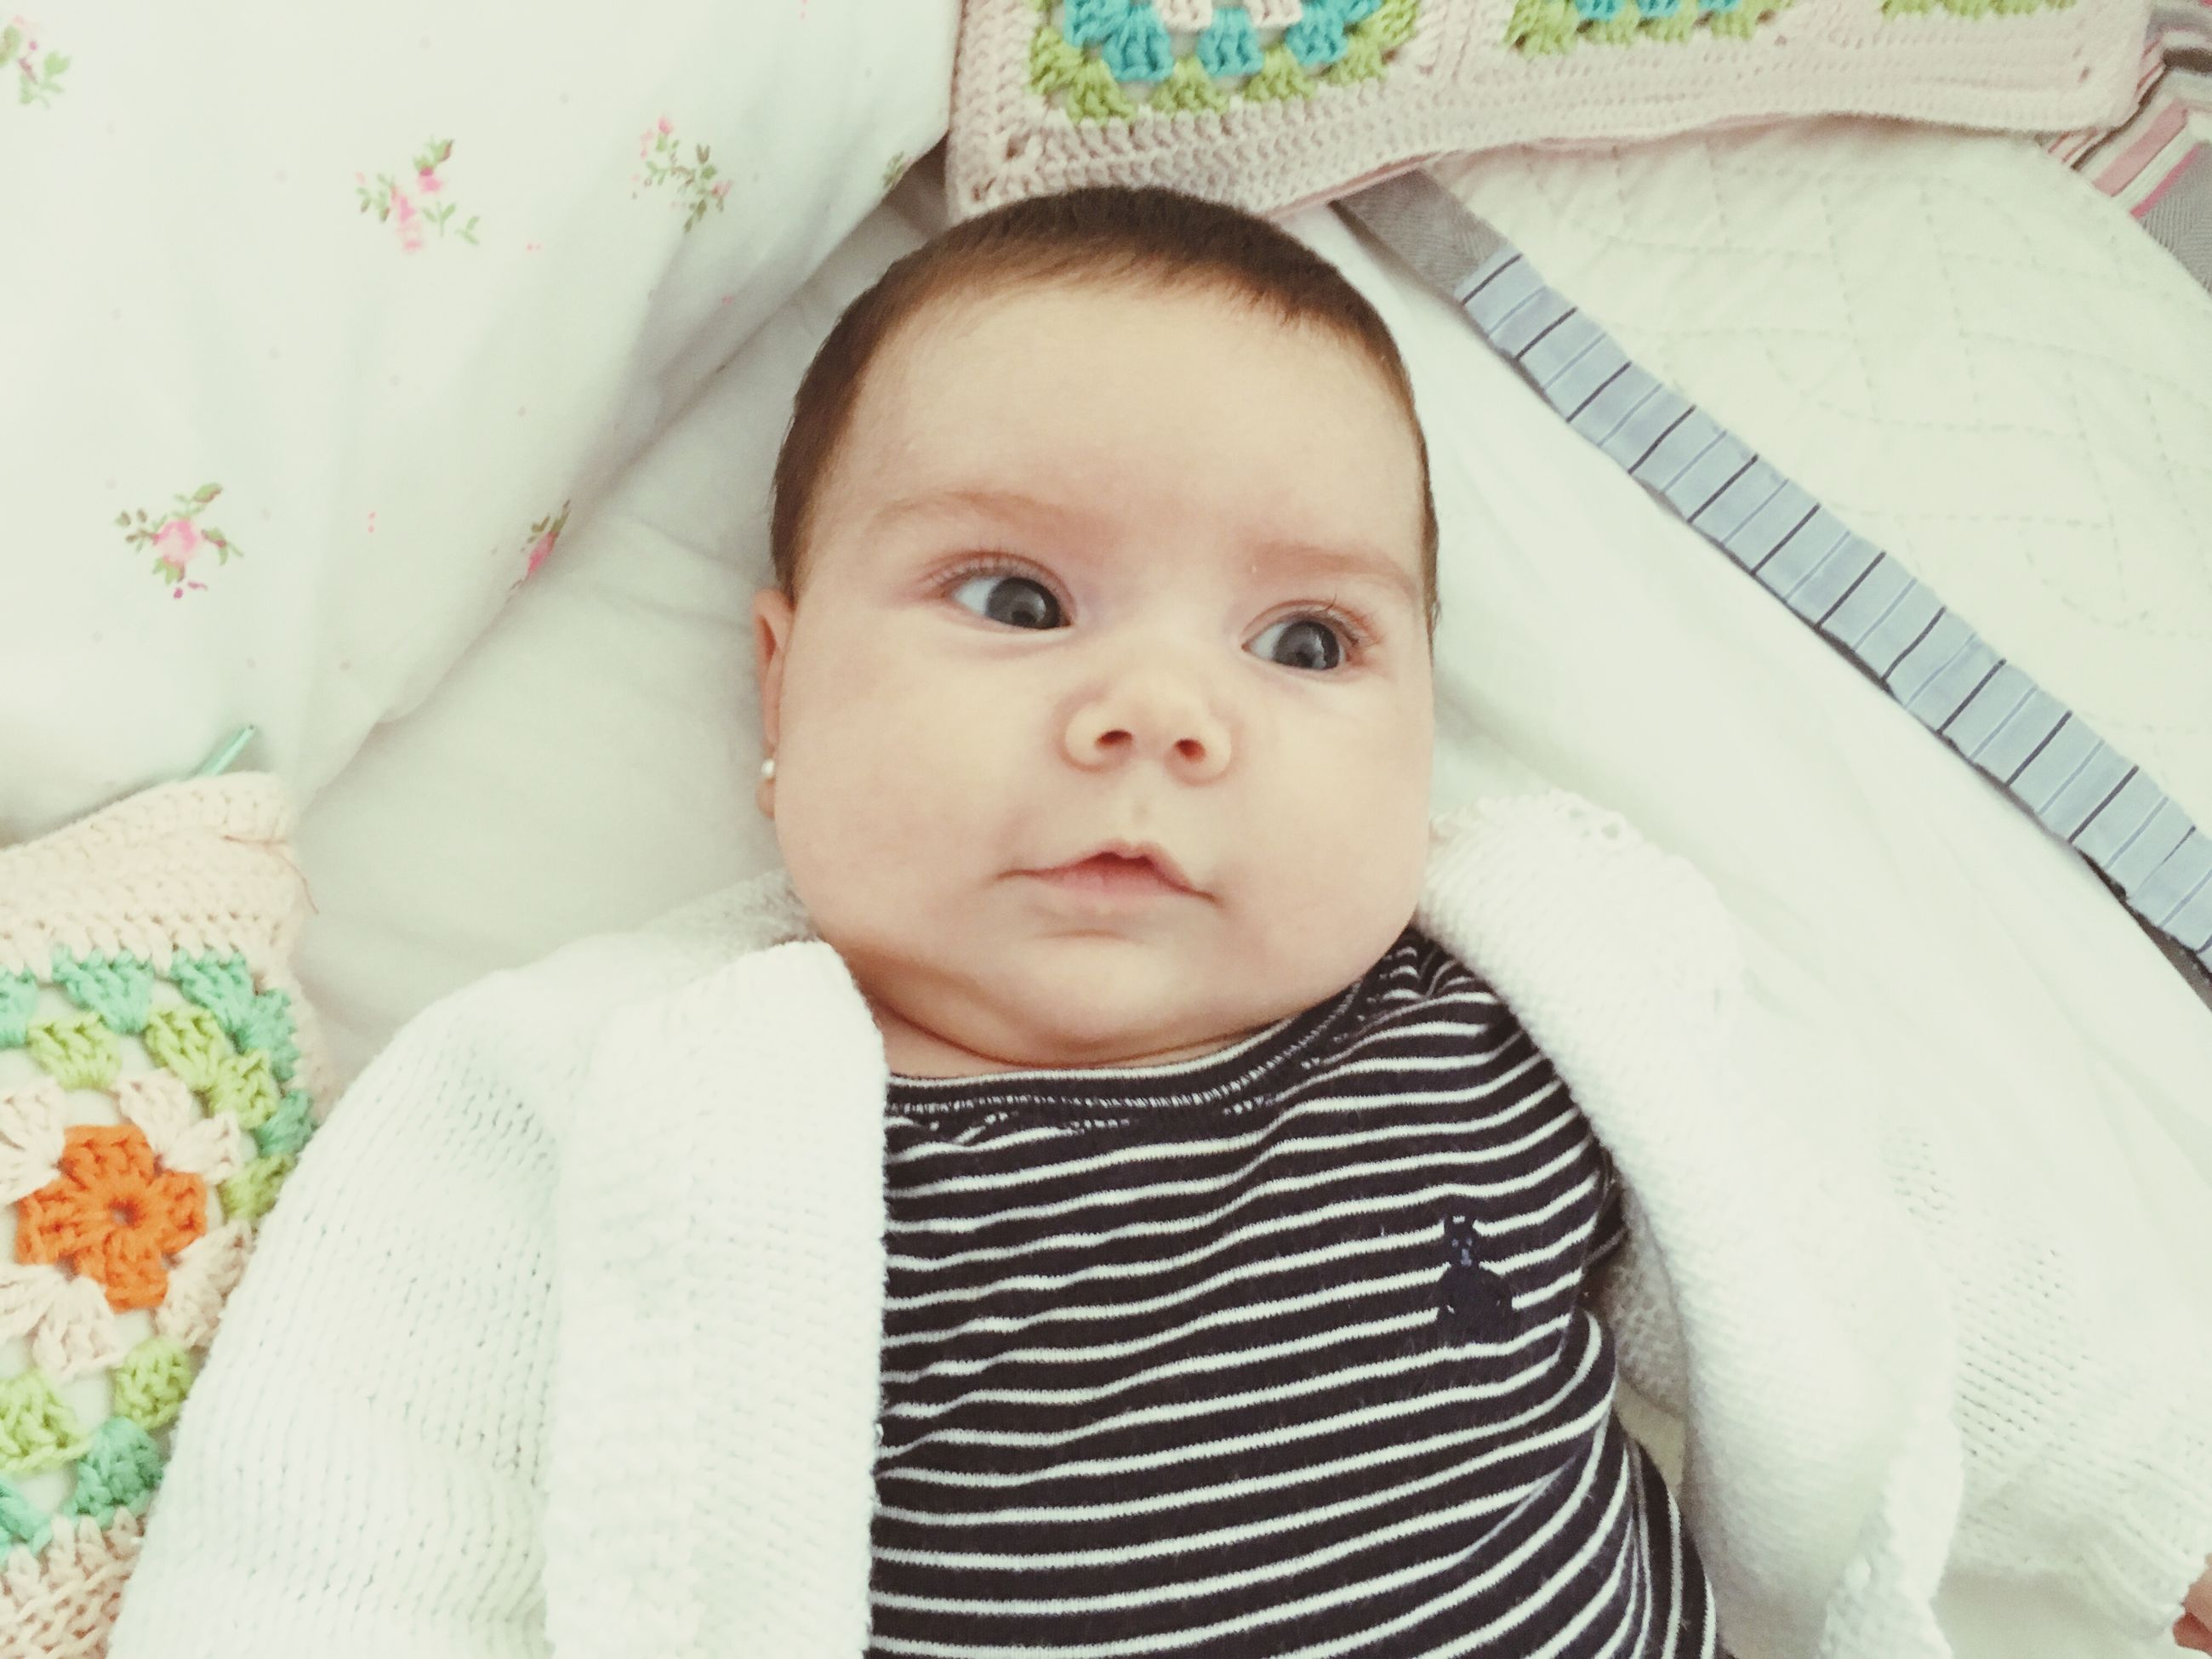 baby, looking at camera, portrait, innocence, indoors, real people, bed, one person, babyhood, bedroom, close-up, people, day